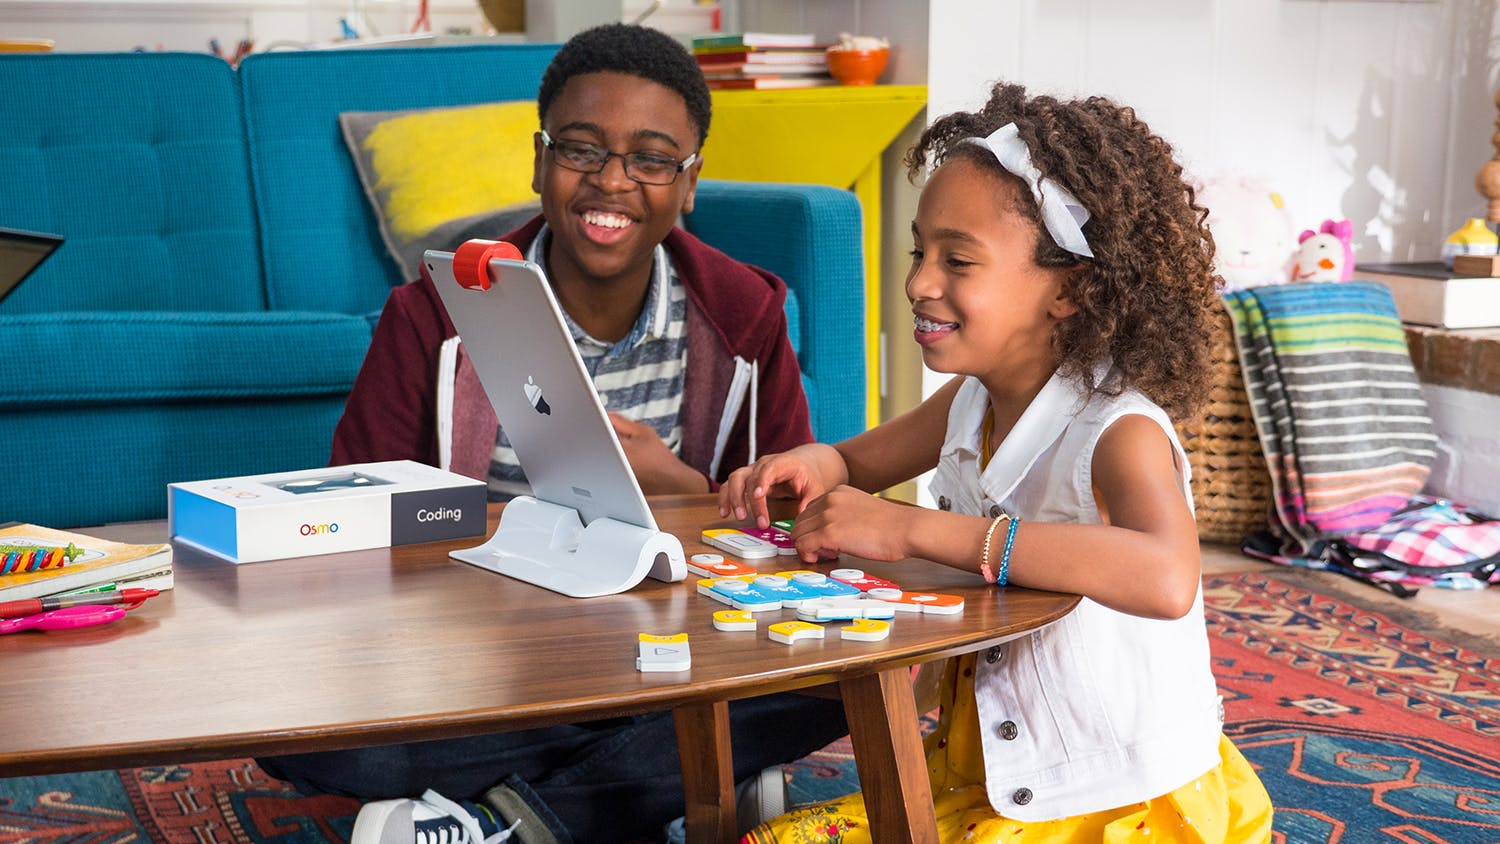 Osmo Coding Starter Kit for iPad (2020)